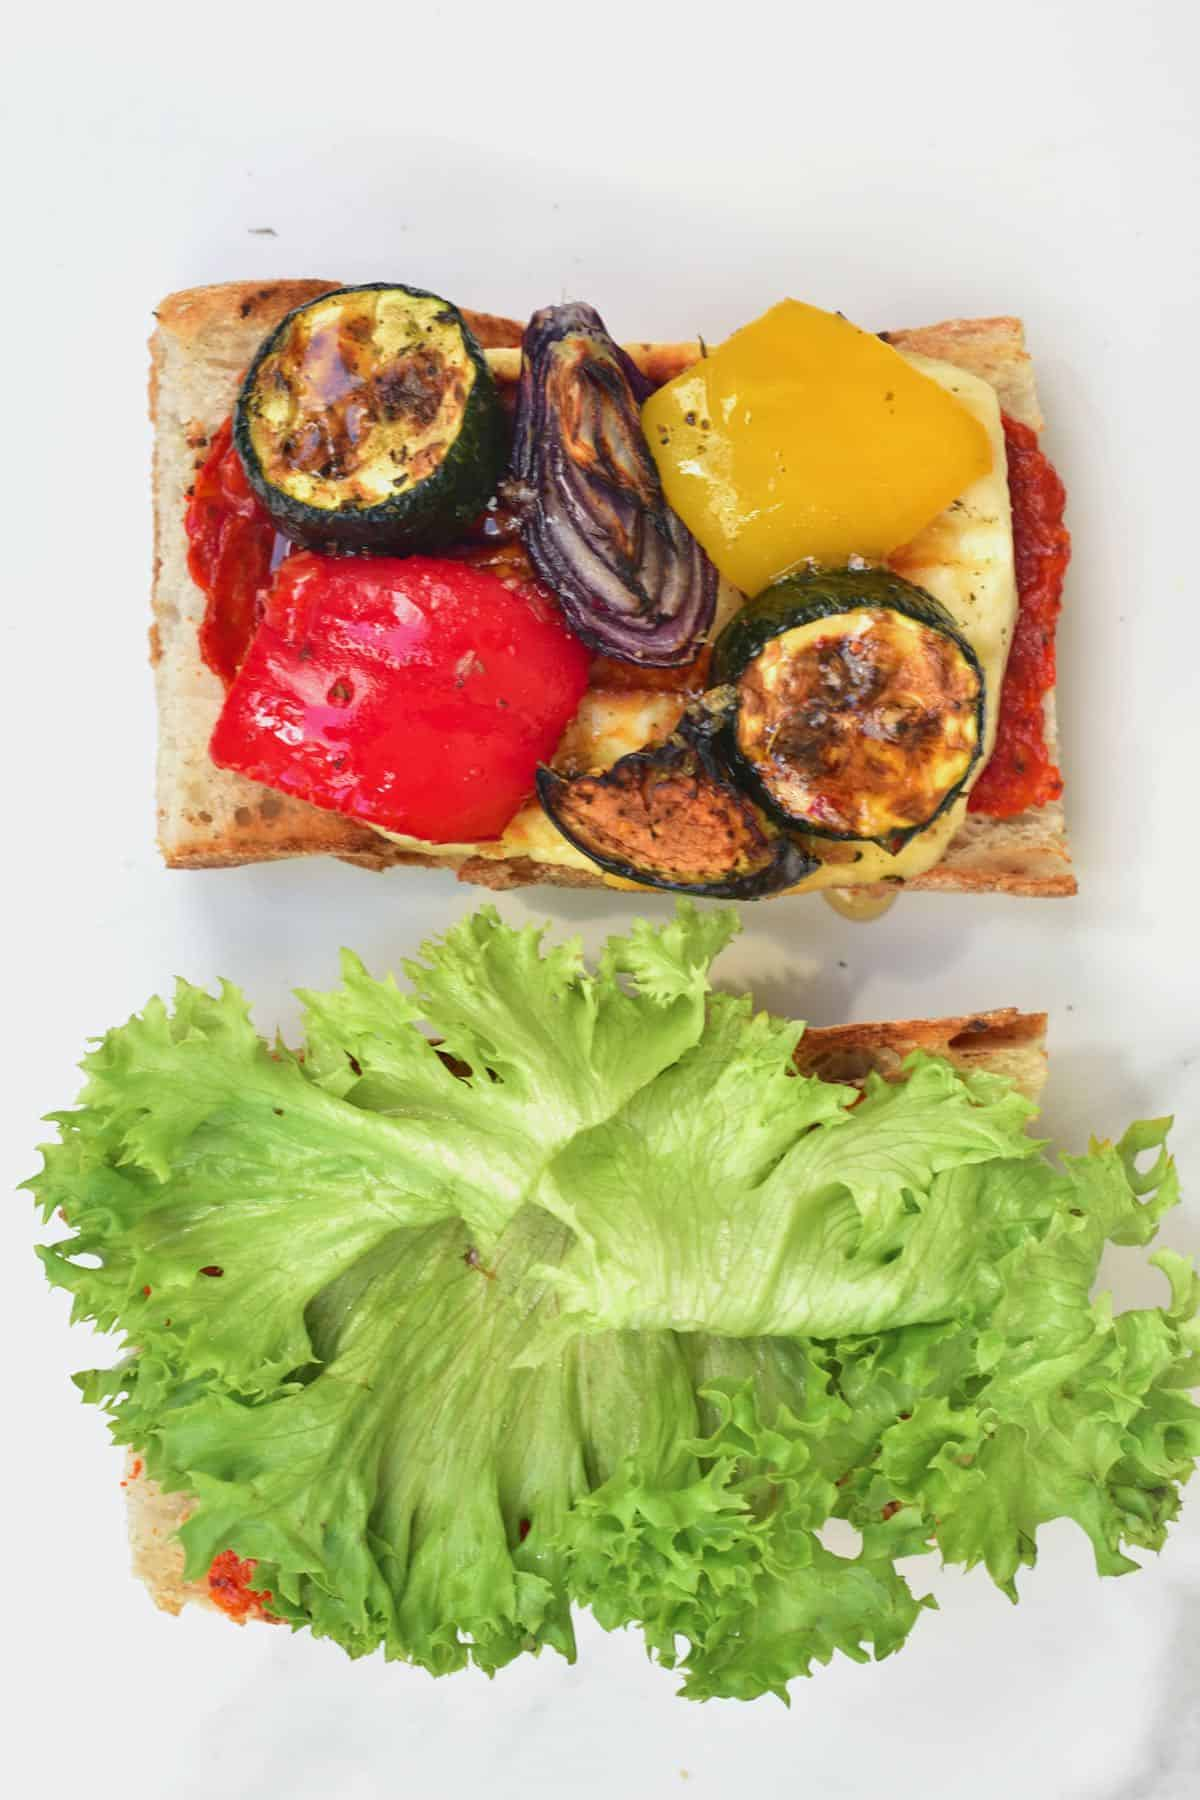 A sandwich with roasted veggies